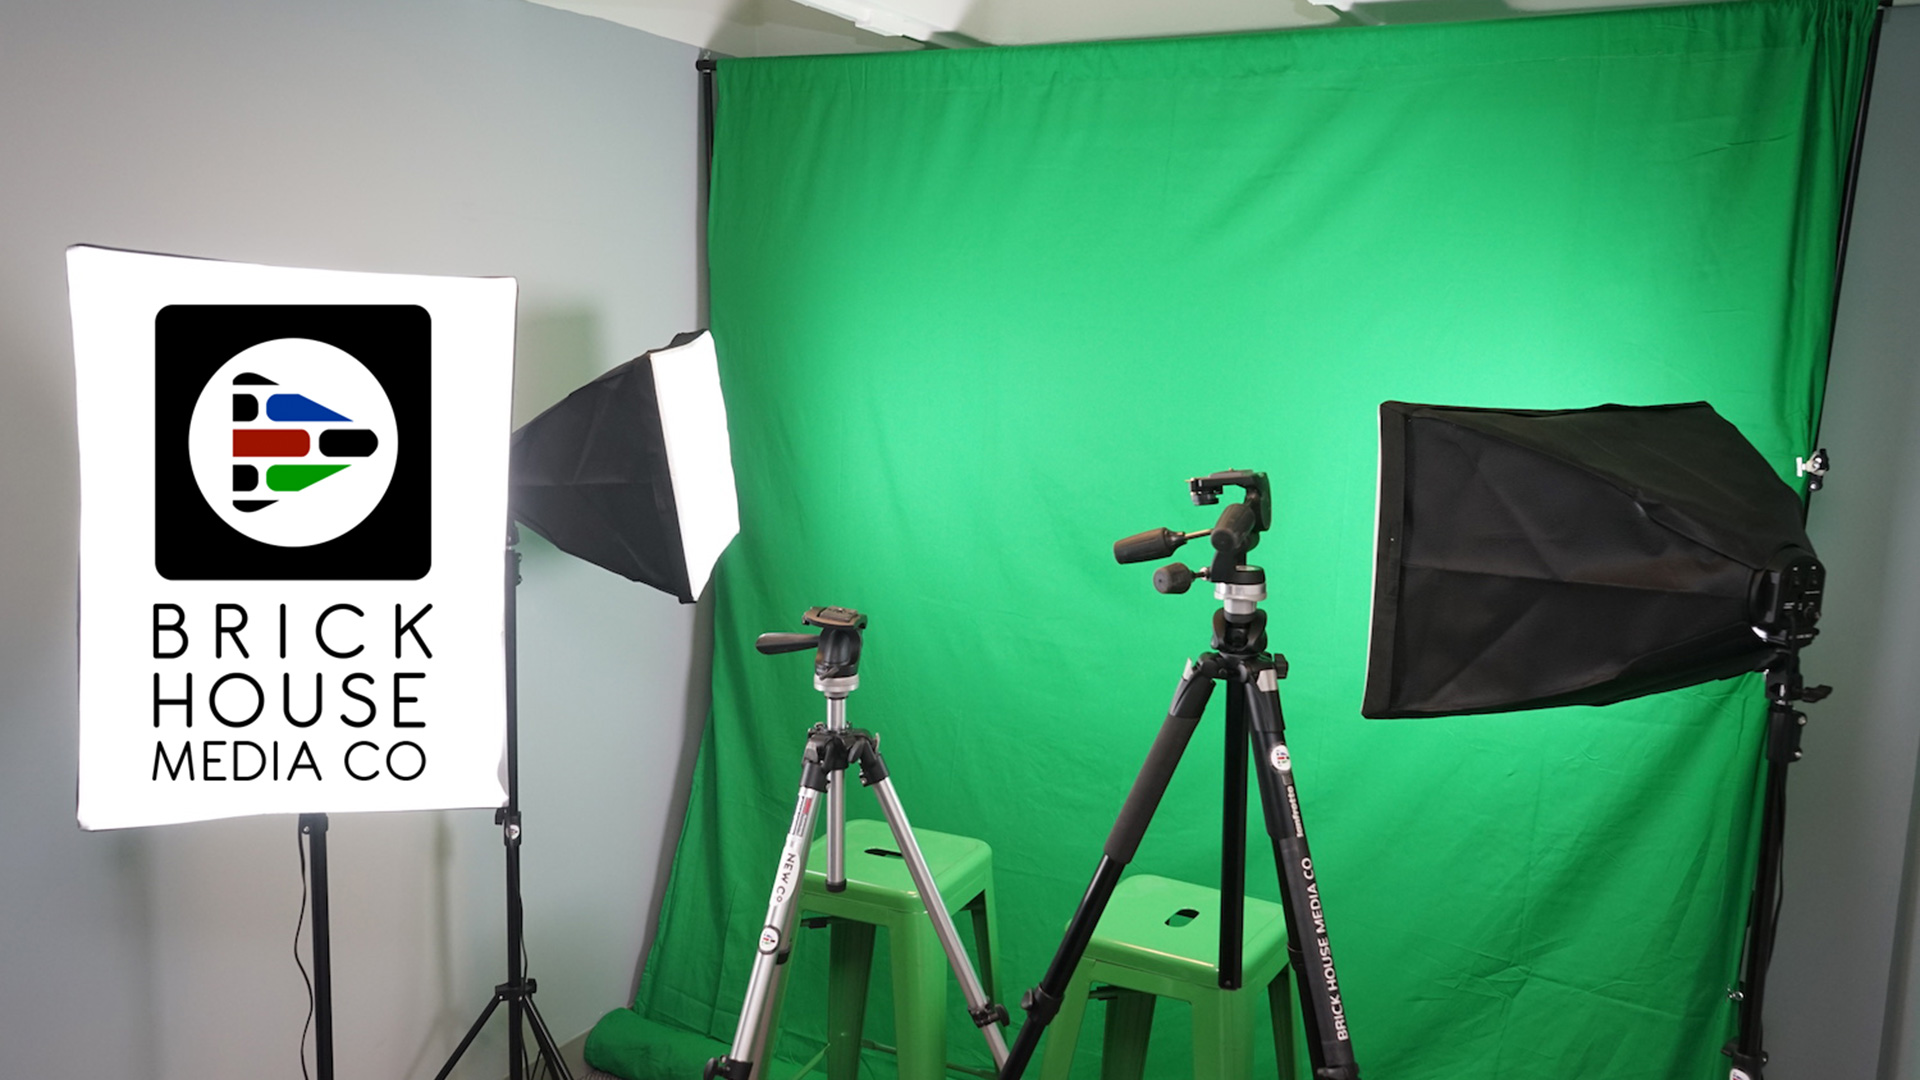 Custom Video Productions - Video has become a core asset for business, marketing and advertising. Our work focuses on this visual medium to educate, inspire and empower people into action. Contact us for a custom proposal for your video needs.